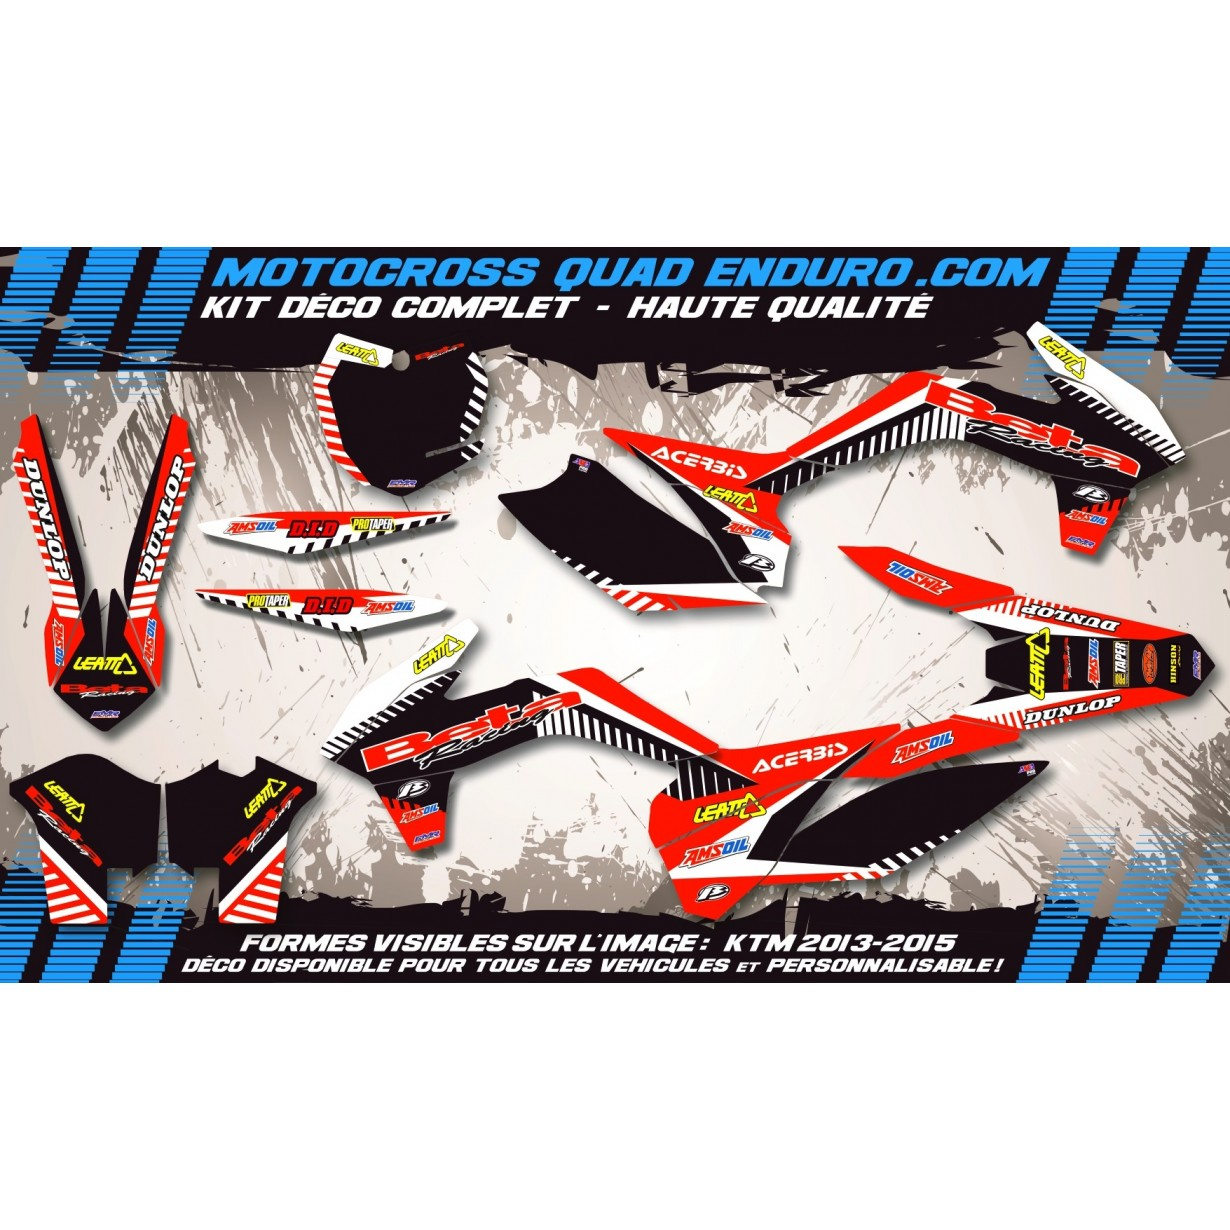 KIT DÉCO Perso 50 RR enduro 2007 Beta Racing MA12F